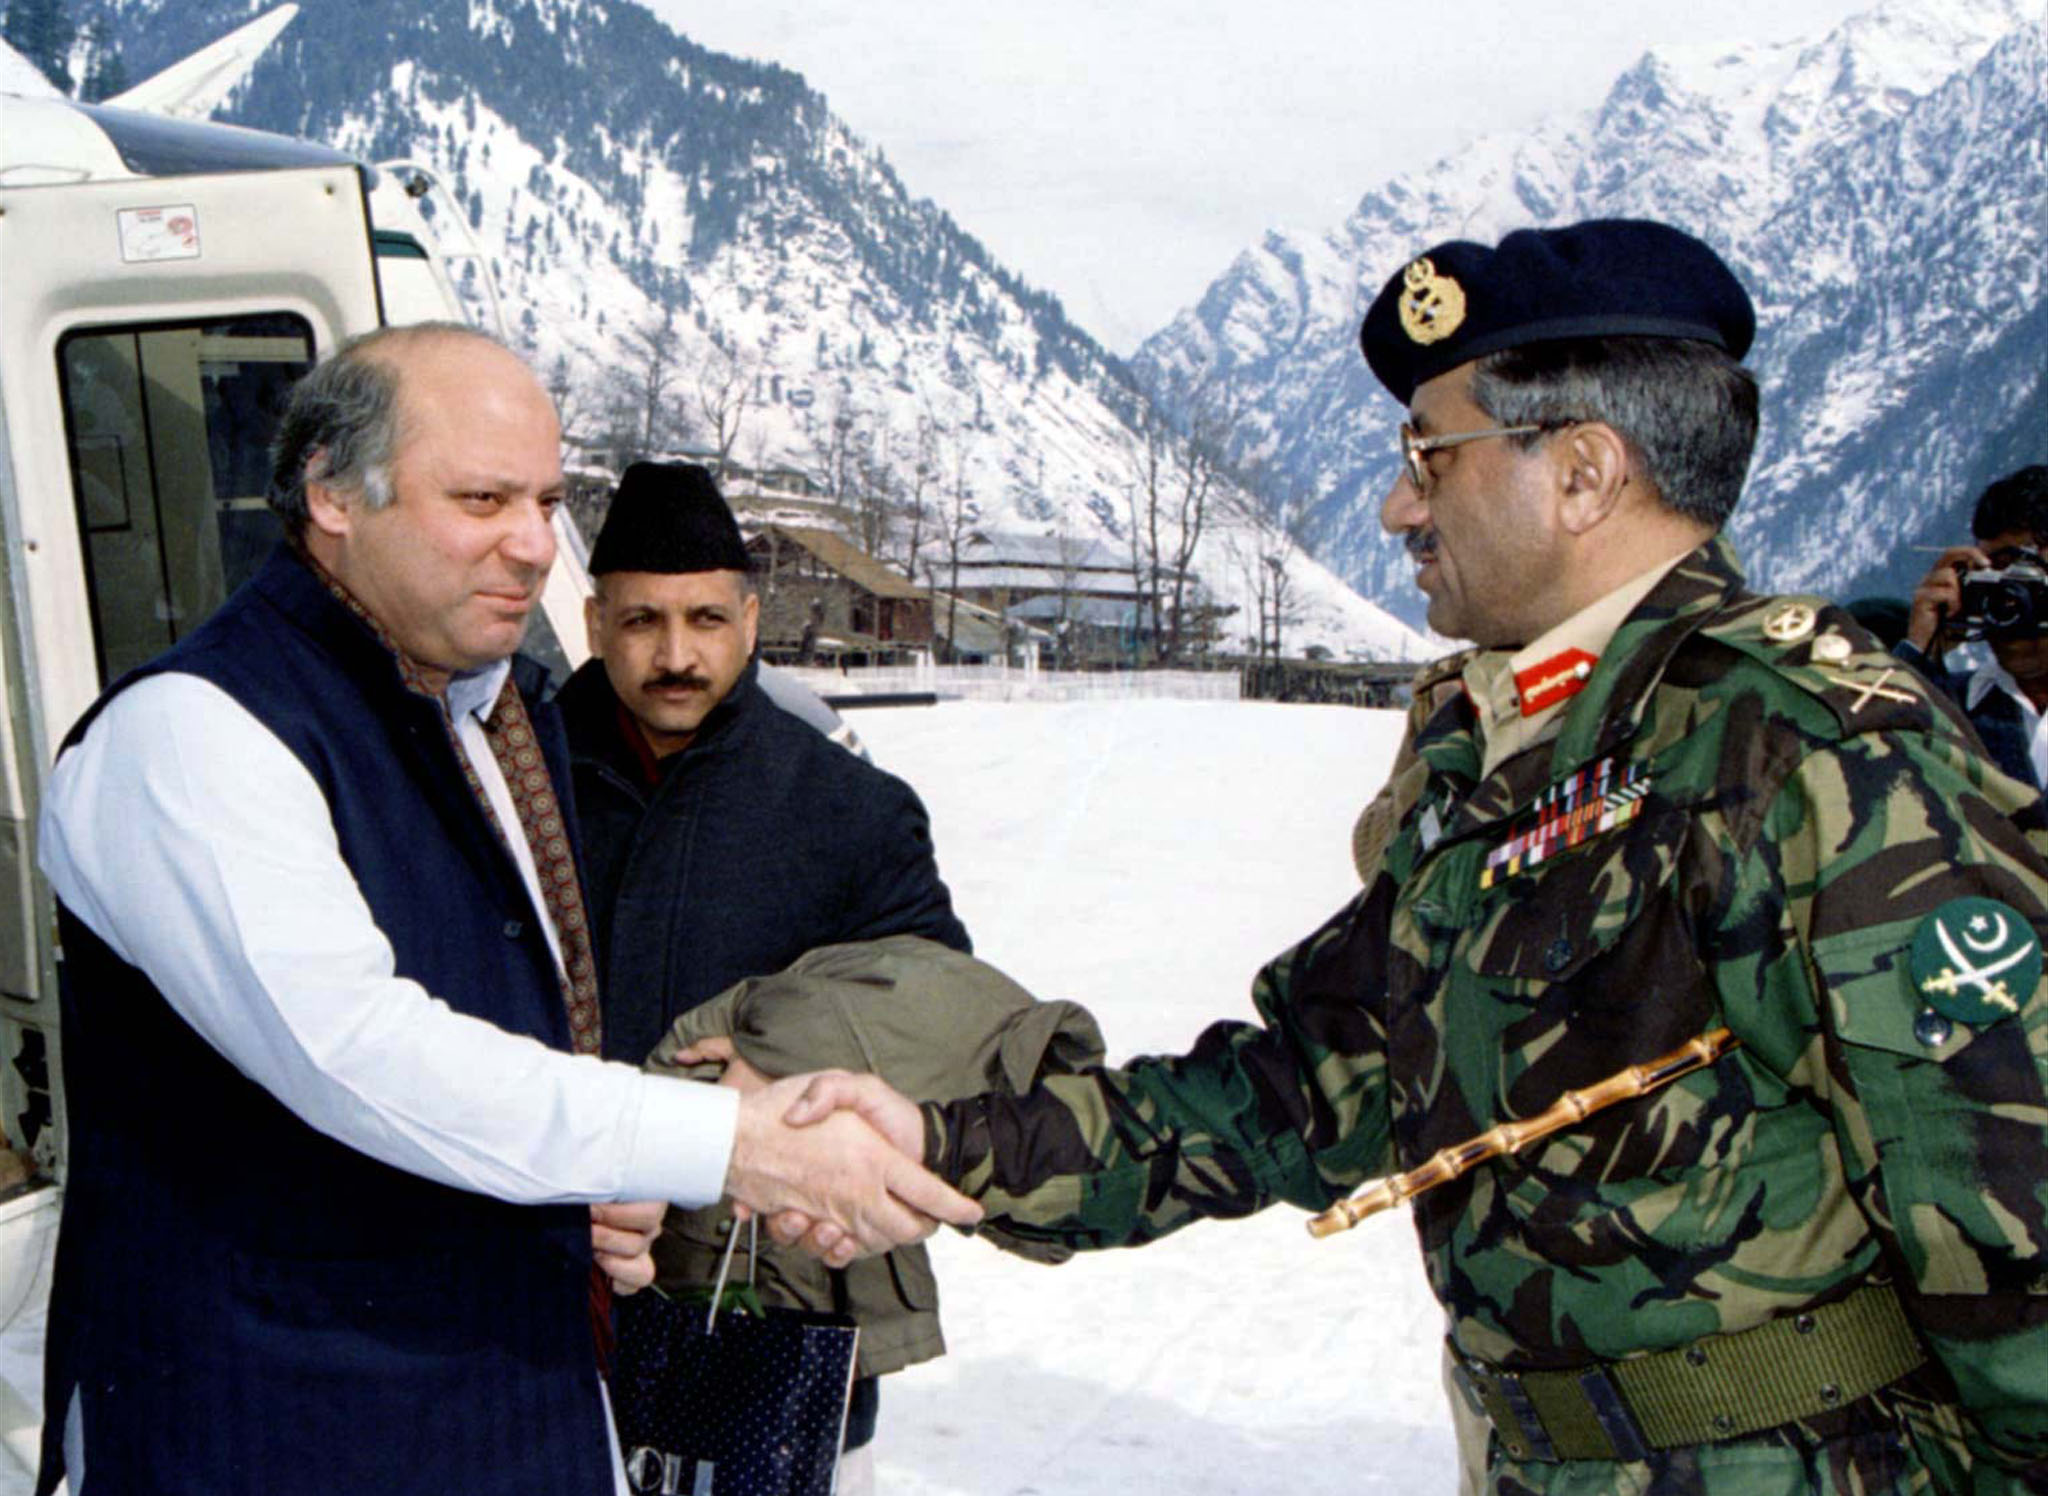 Prime Minister Nawaz Sharif  is greeted by army chief General Pervez Musharraf on arrival at the snow-clad town of Kail on the border in the disputed Himalayan region of Kashmir in this February 5, 1999 file photo. — Reuters